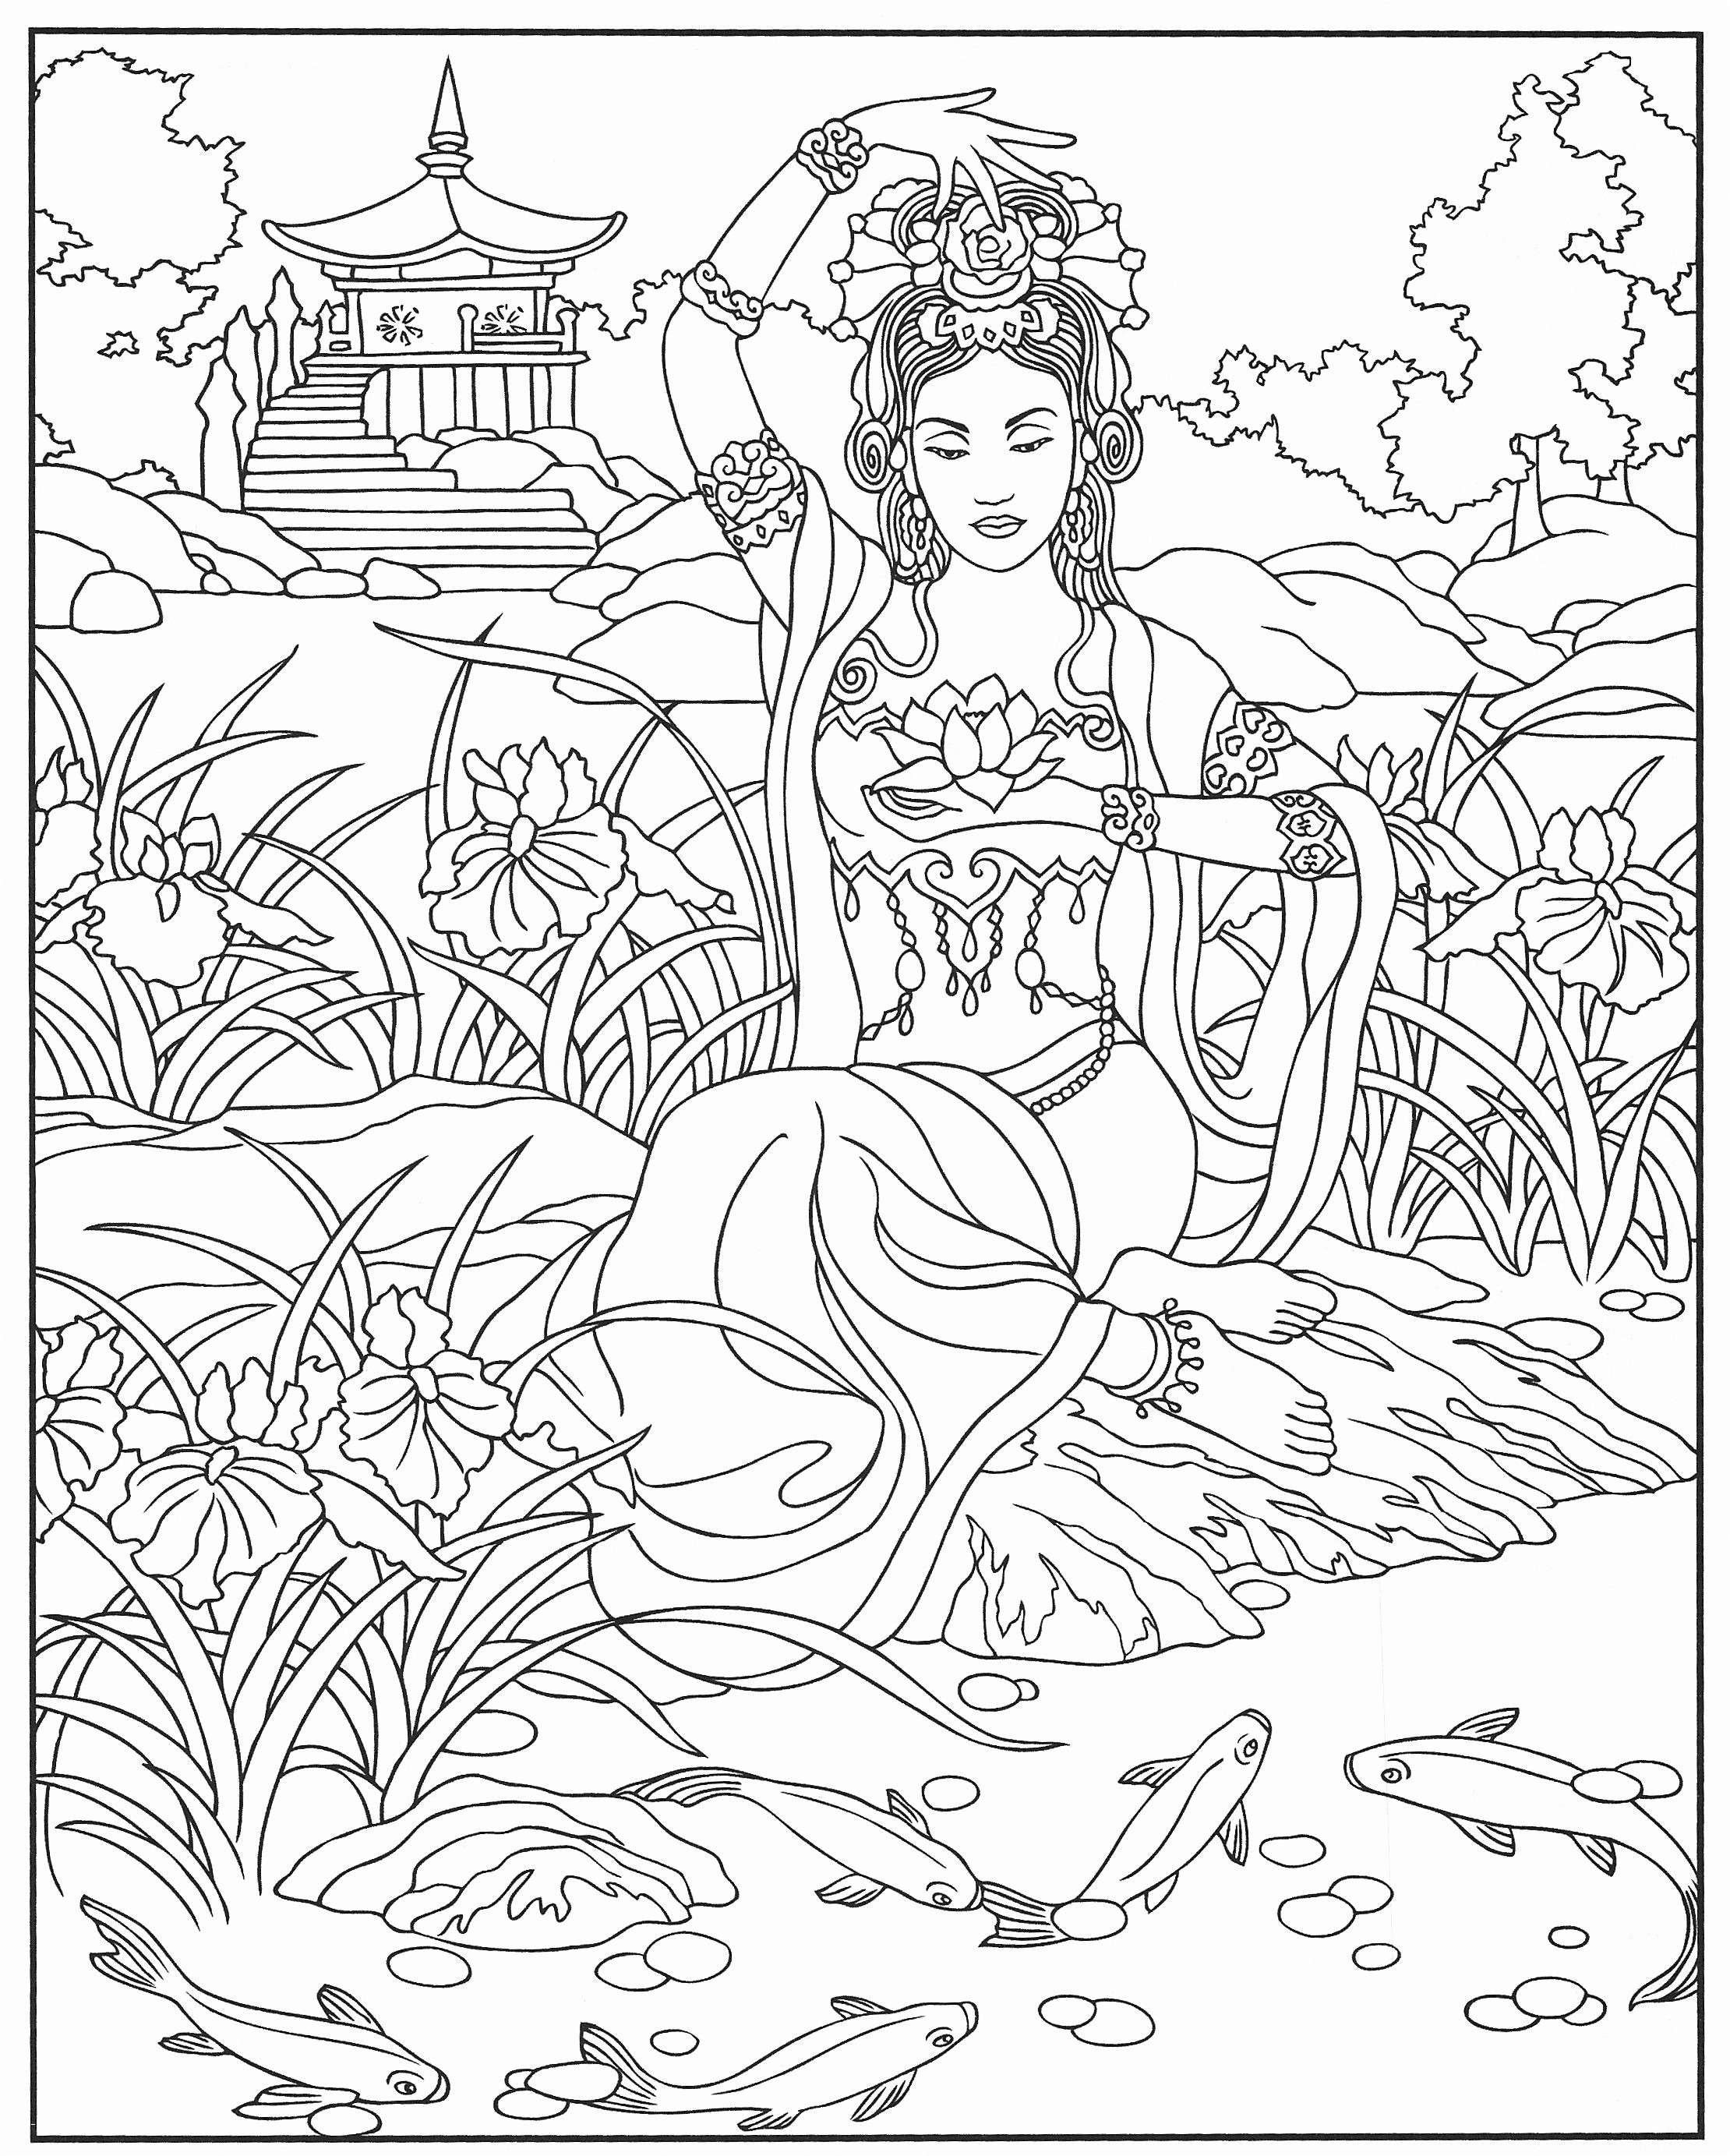 Doll Coloring Pages Through The Thousand Images Online With Regards To Doll Coloring Pages We S Animal Coloring Pages Crayola Coloring Pages Coloring Pages [ 2766 x 2220 Pixel ]